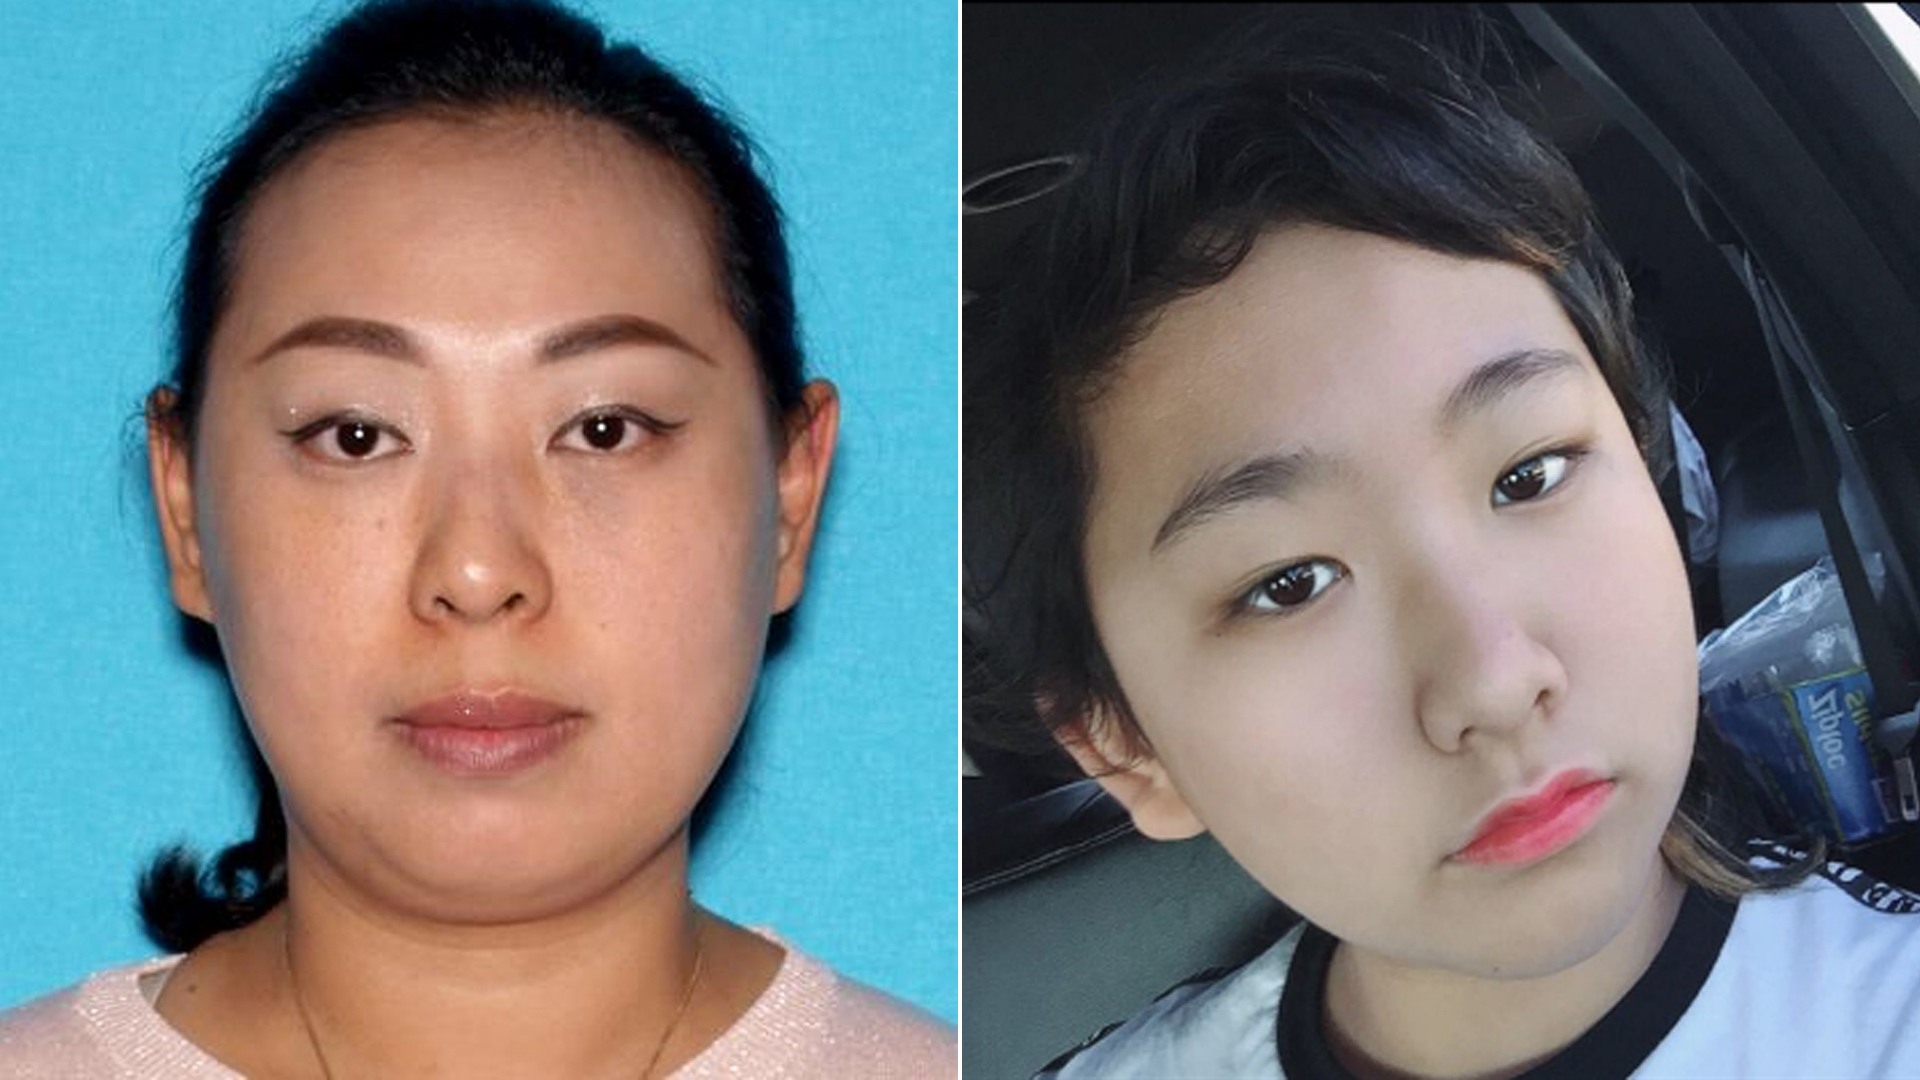 Amber Aiaz, also known as Mei Yi Wu, 34, of Irvine, left, and daughter Melissa Fu, 12, of Irvine, right, pictured in photos released by the Irvine Police Department on Dec. 4, 2019.